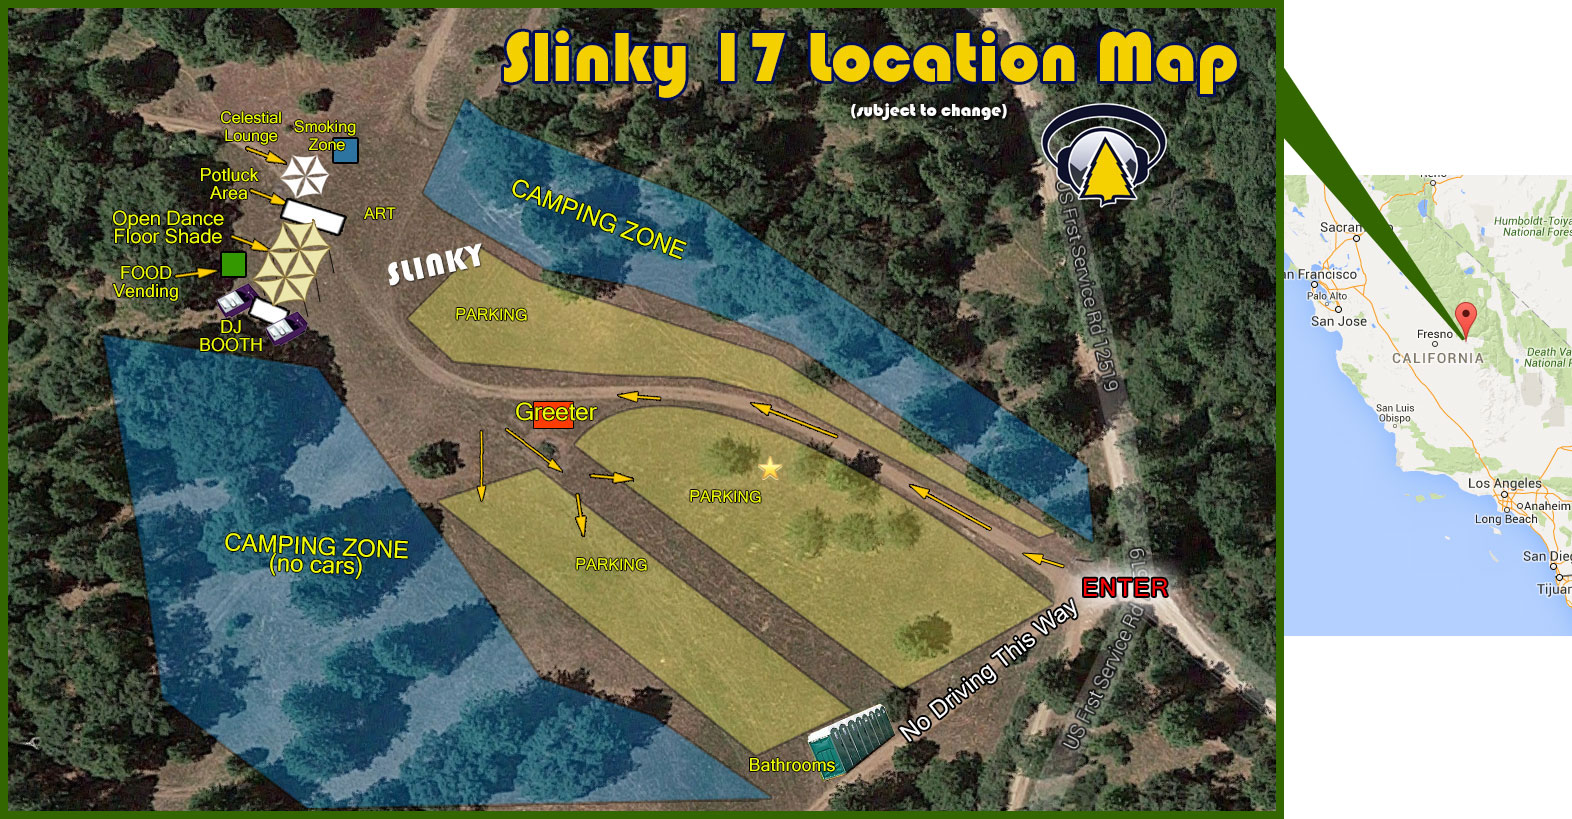 Slinky 17 Layout Map